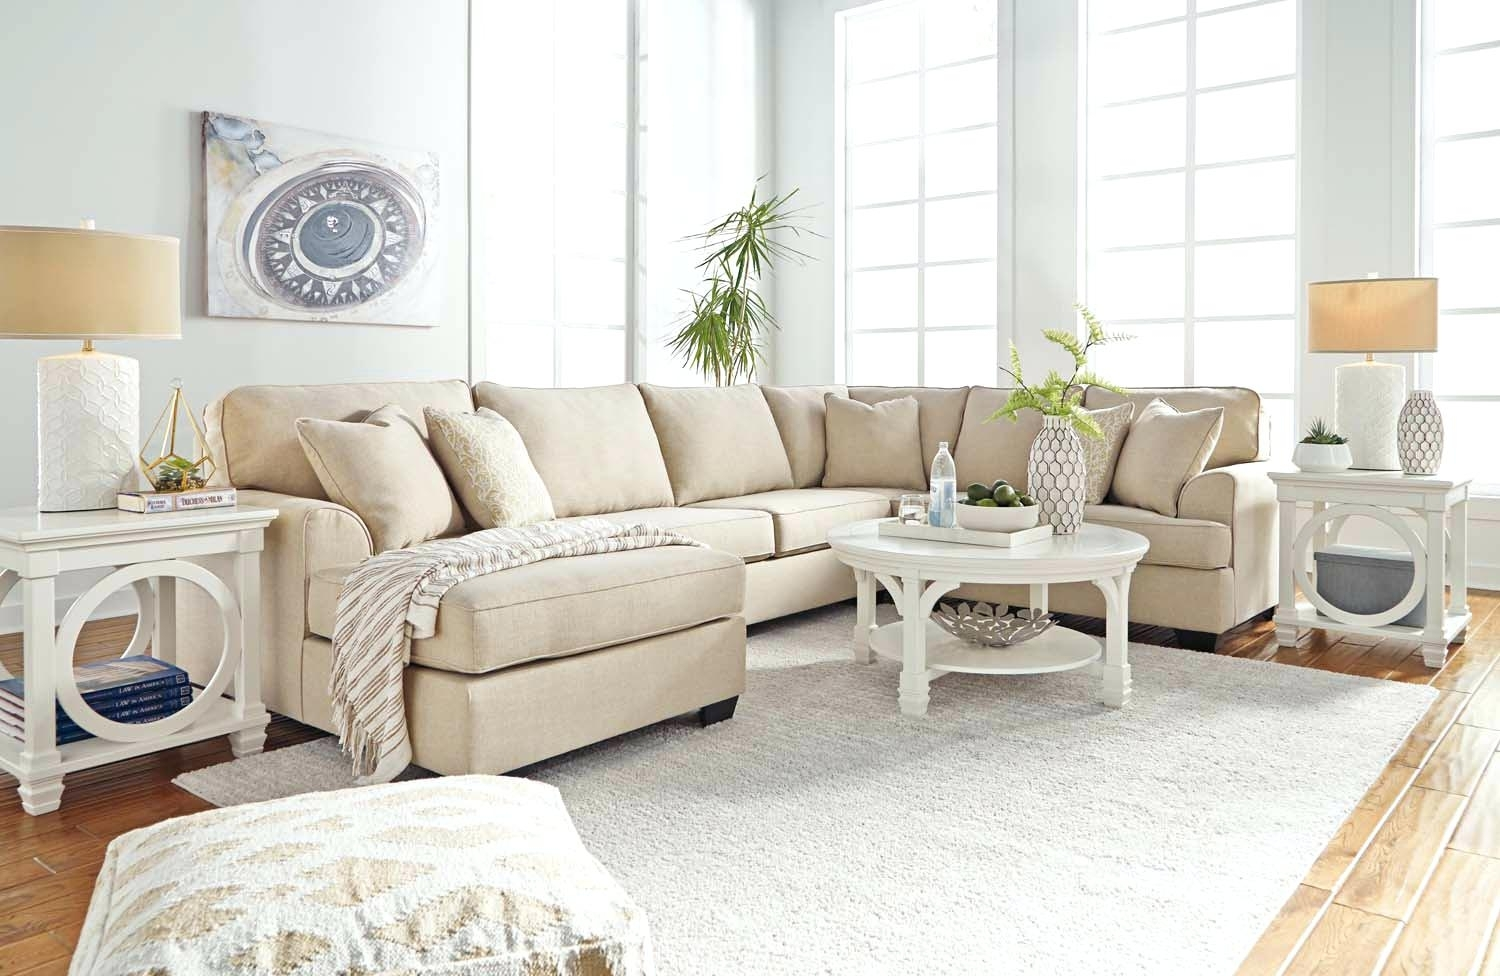 3 Piece Sectional Haven Blue Steel 3 Piece Sectional 3 Pc Reclining Regarding Haven Blue Steel 3 Piece Sectionals (Photo 8 of 30)